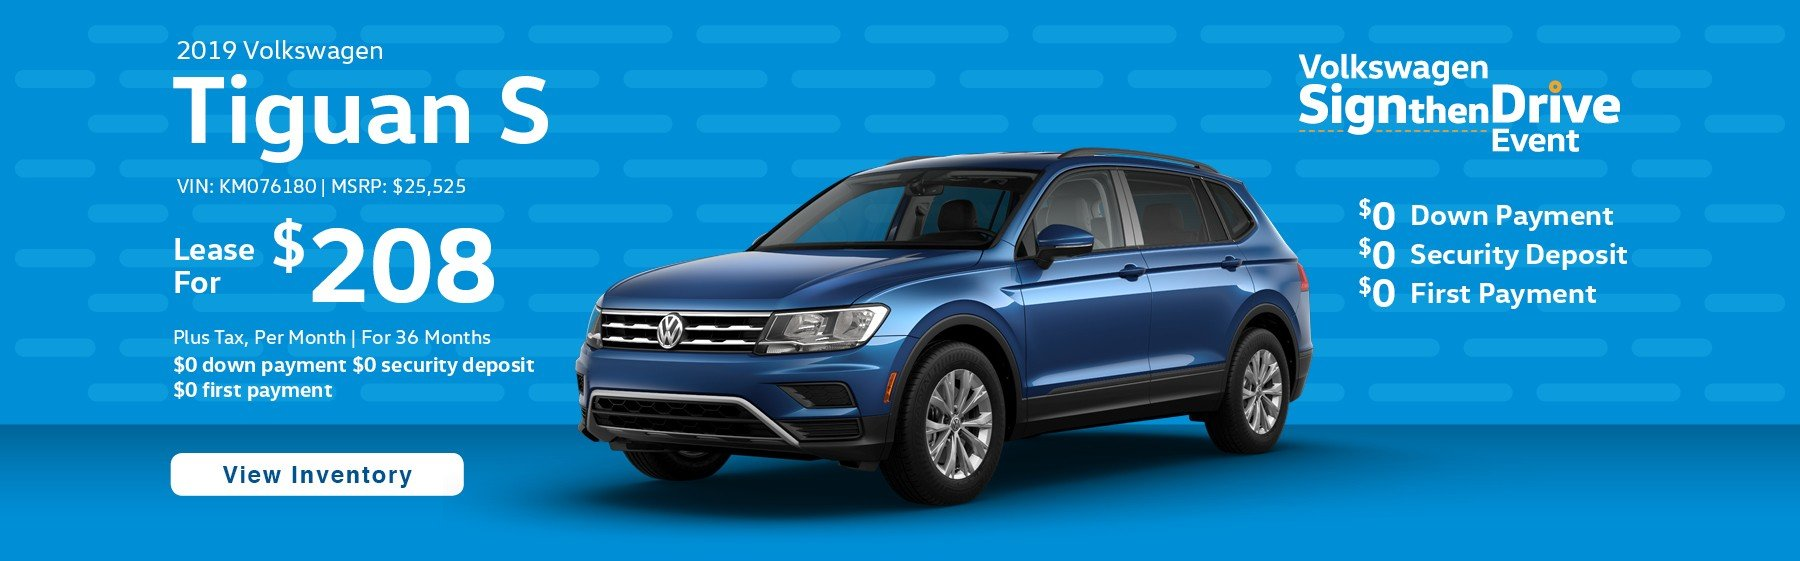 Lease the 2019 Volkswagen Tiguan S for $208 plus tax for 36 months. $0 Down payment required.